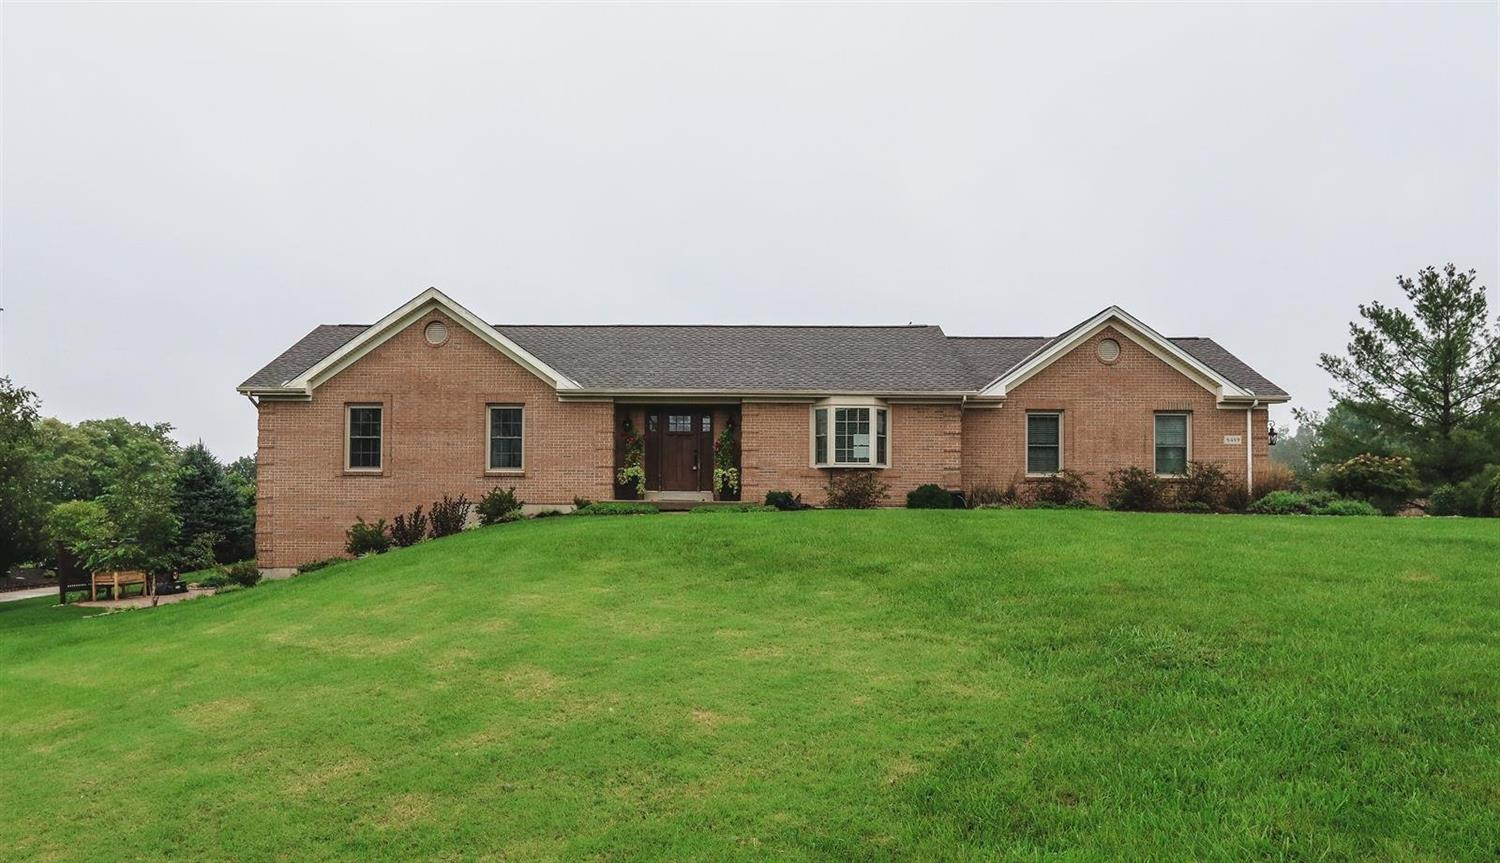 8489 Harrison Ave Whitewater Twp., OH